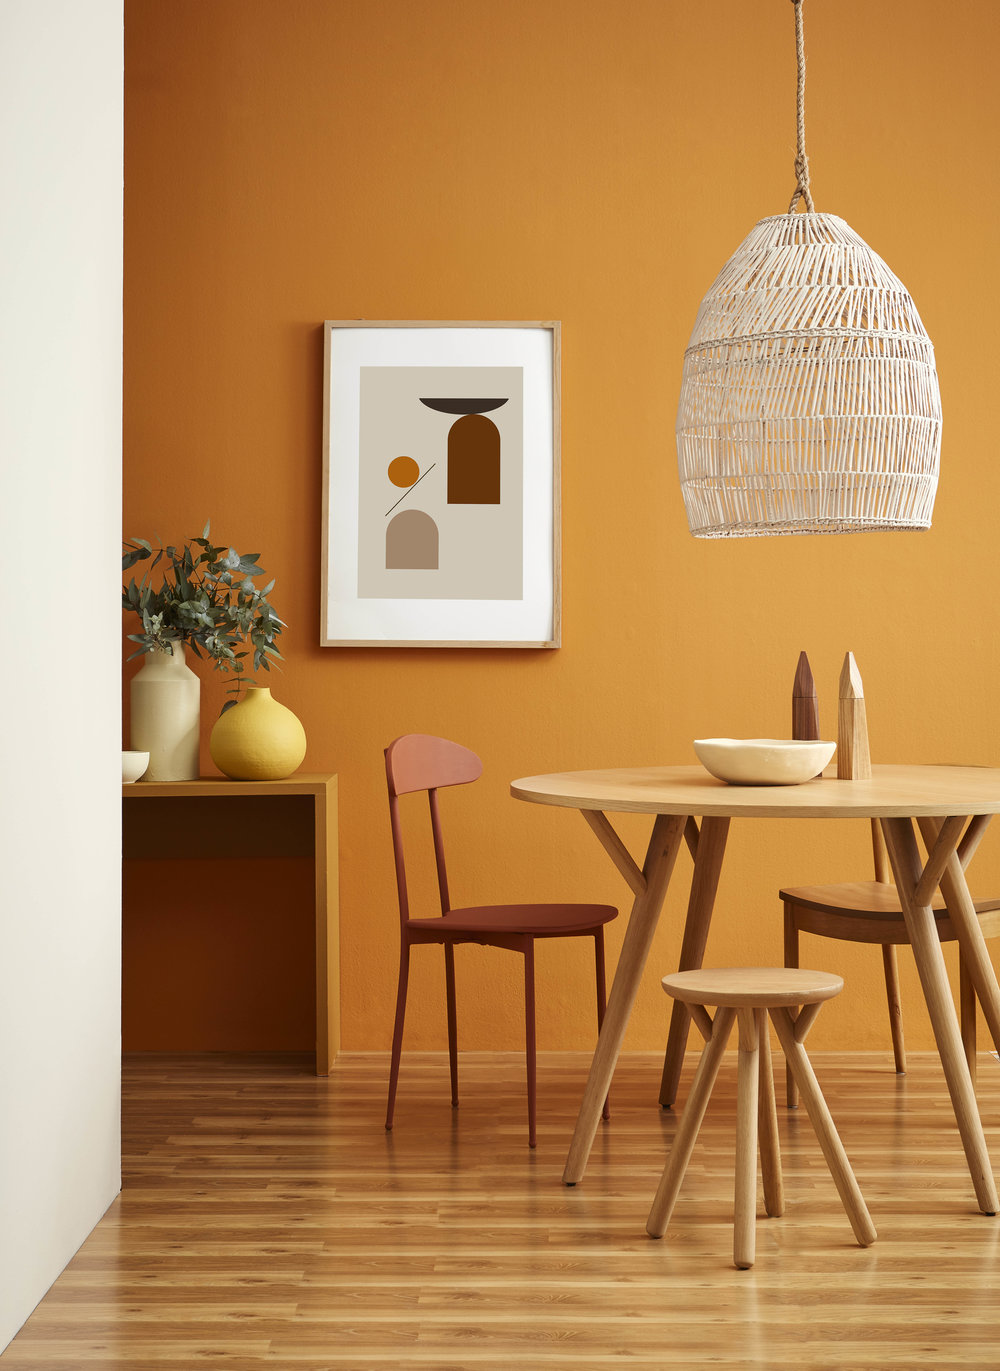 Wall in Resene Twisted Sister. Side wall in Resene Half Spanish White. Floor in Resene Colorwood Natural. Sideboard in Resene Swiss Caramel. Pendant light in Resene Spanish White. Chair in Resene Moccasin